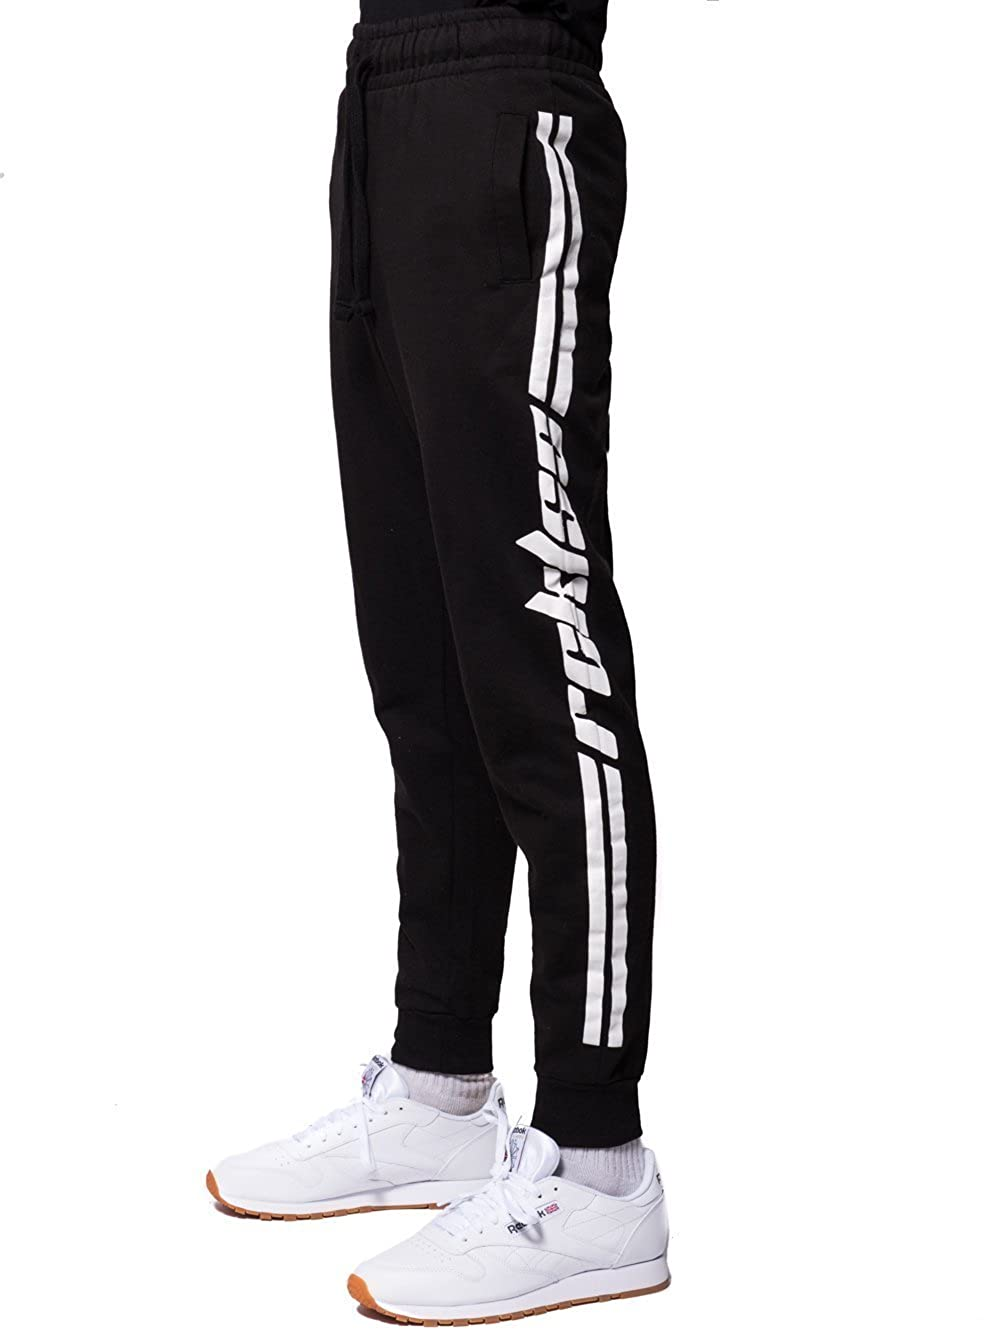 Young & Reckless - Racer Sweatpants - Black/White - - Mens - Bottoms - Sweatpants - 92897771535